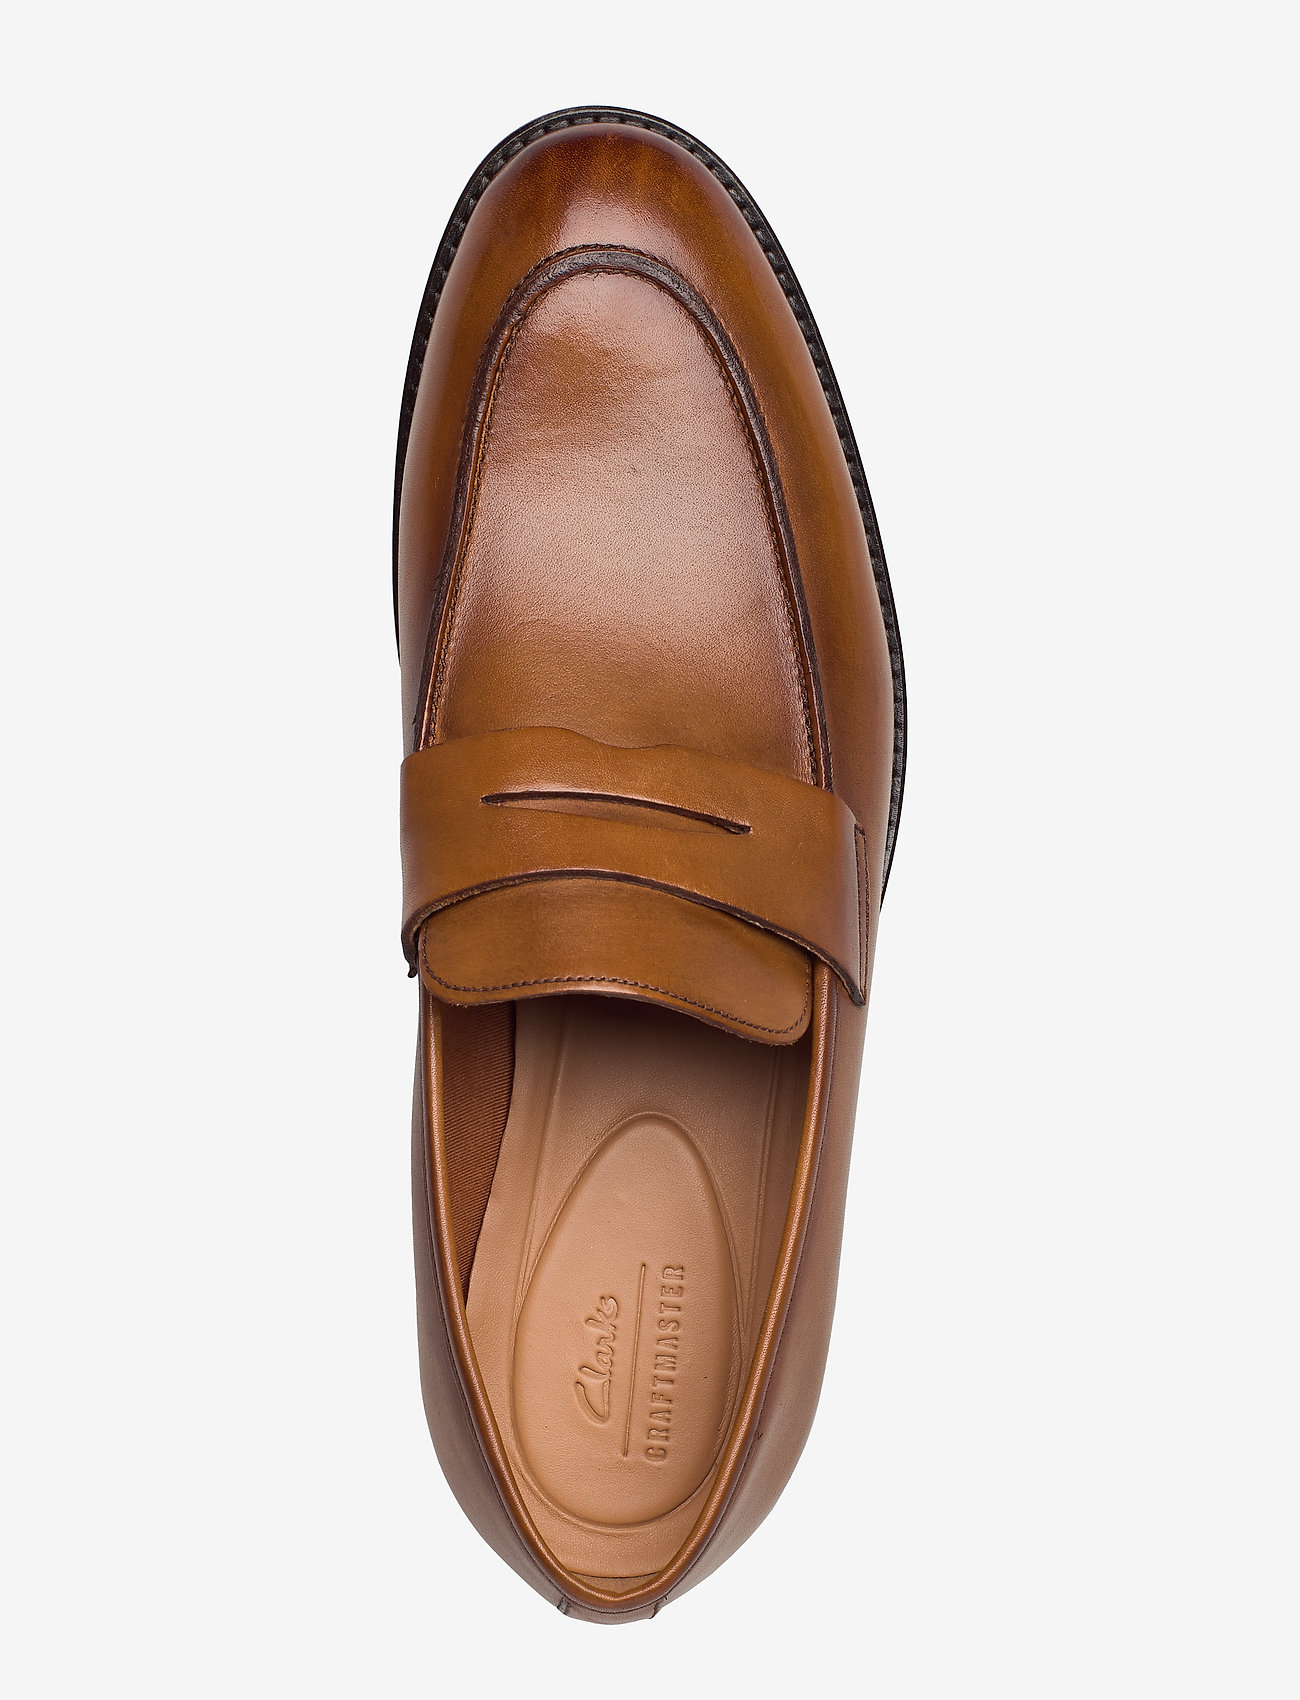 Ronnie Step (Tan Leather) - Clarks